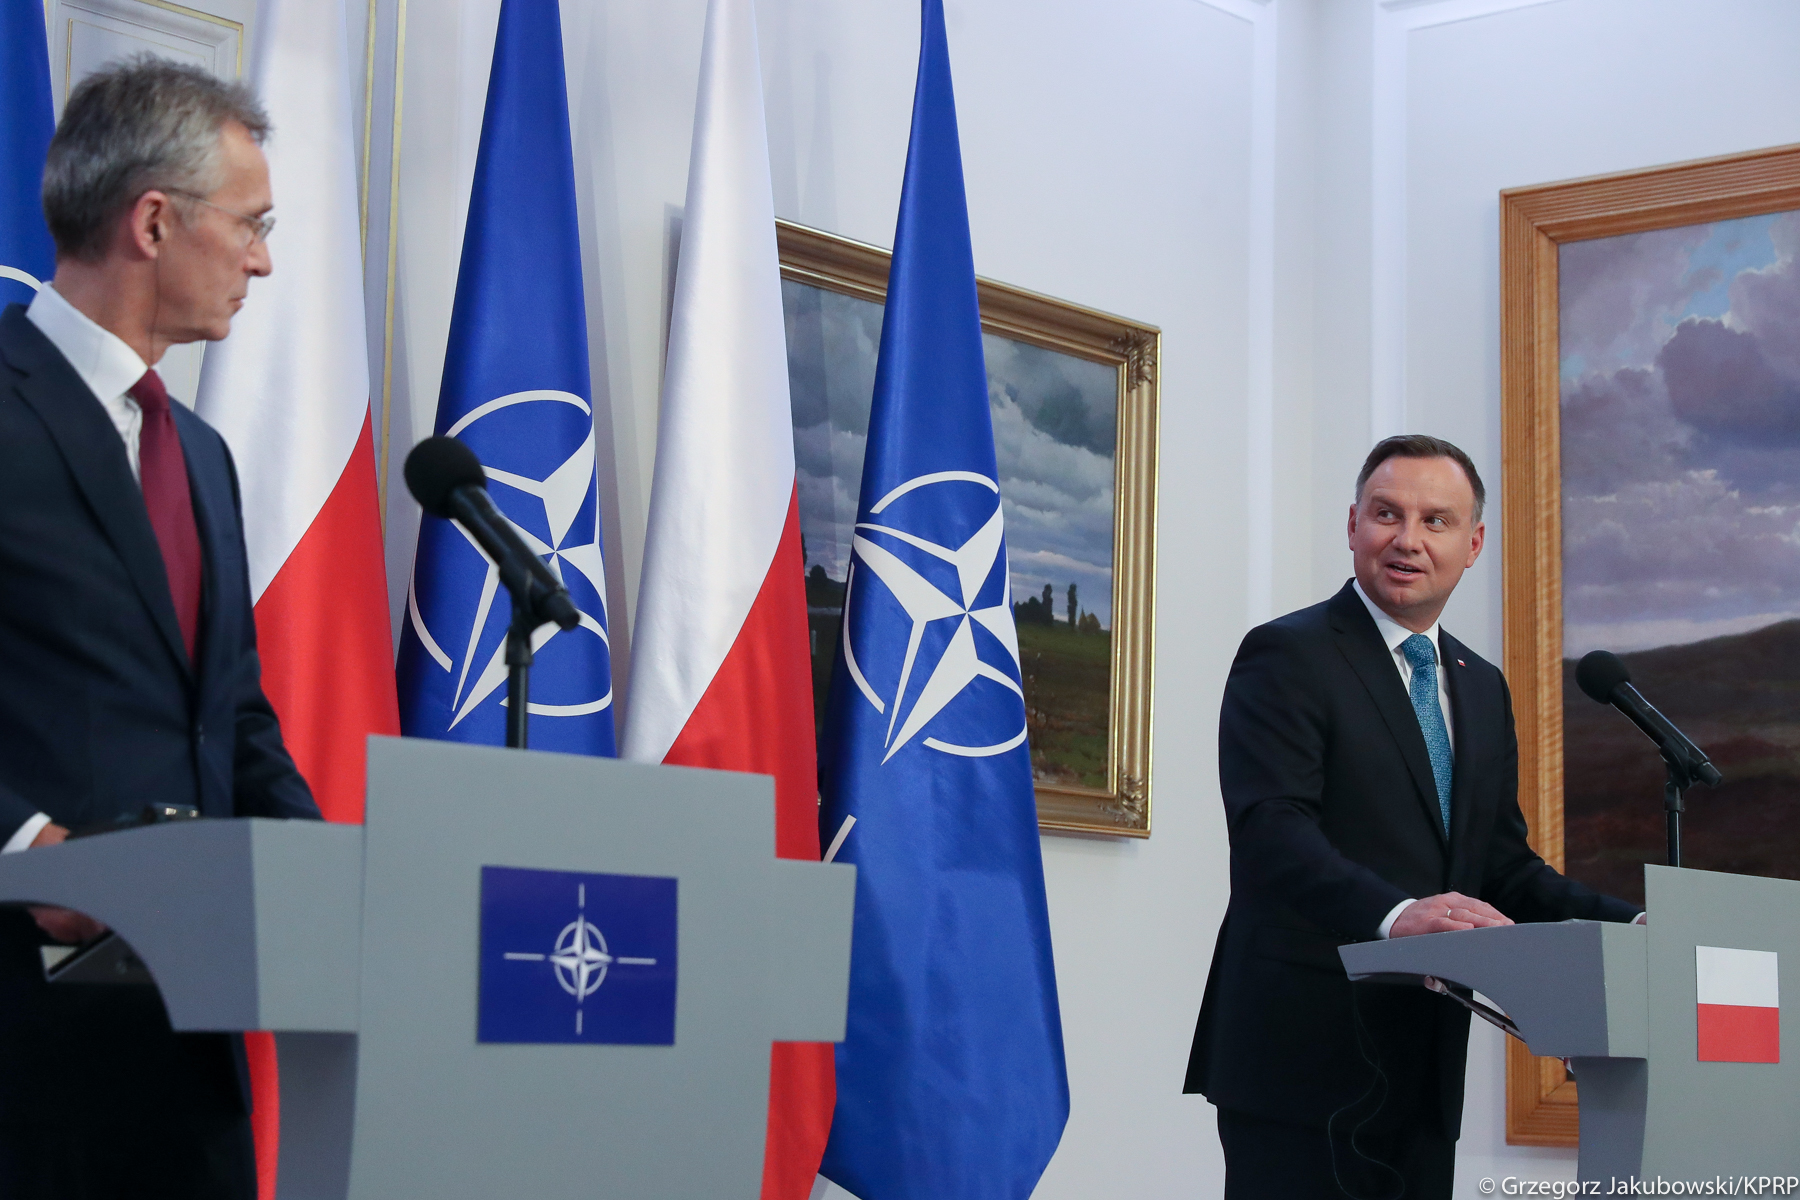 WI Daily News – President of Poland and NATO Secretary discussed recent developments in Belarus